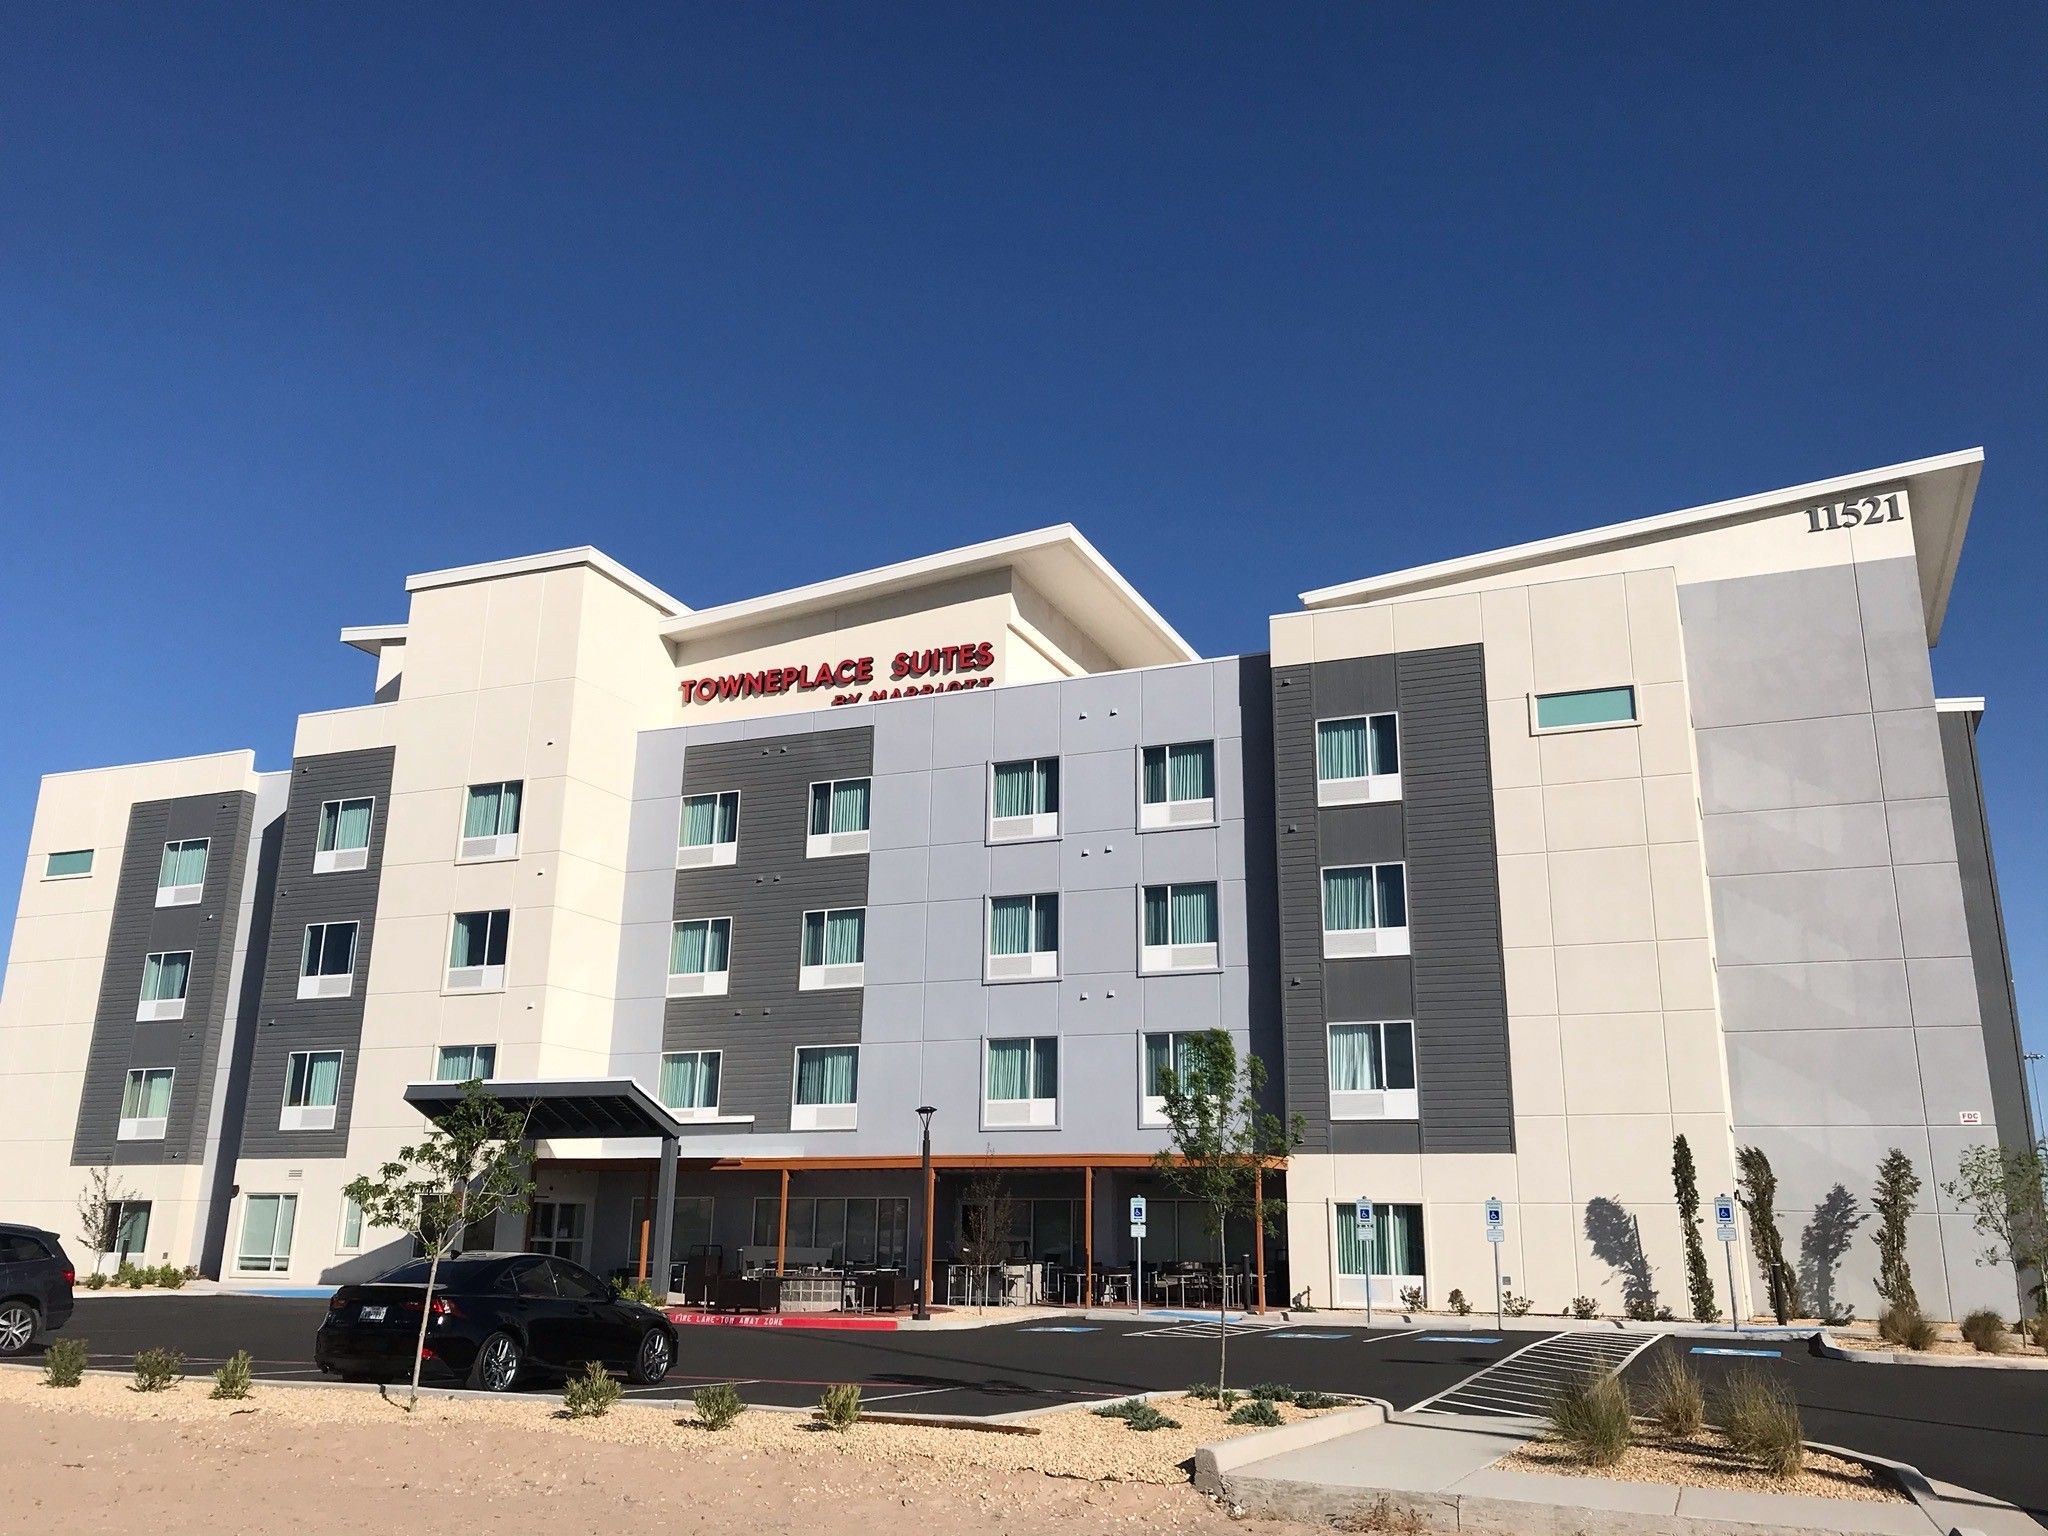 TownePlace Suites by Marriott El Paso East/I-10